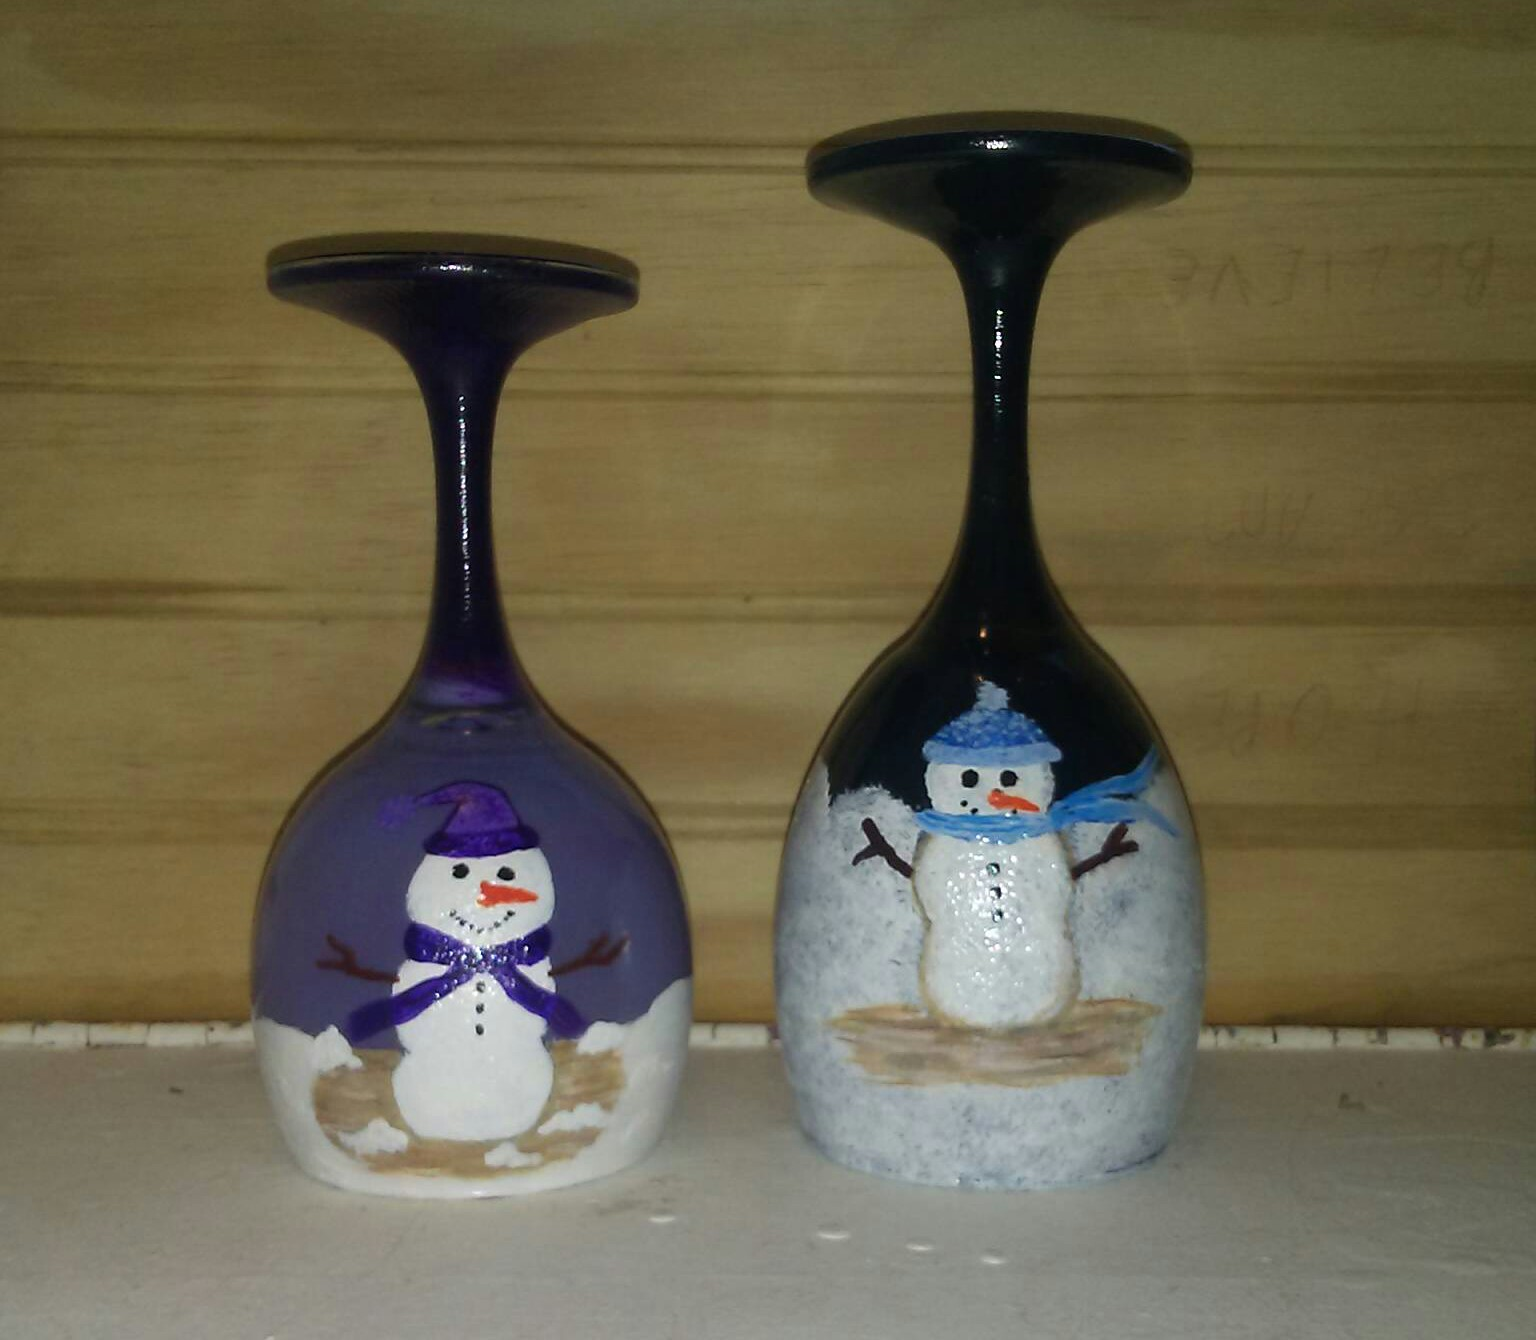 Hand Painted Wine Glass Candle Holders Eclectic Crafts Creations Online Store Powered By Storenvy